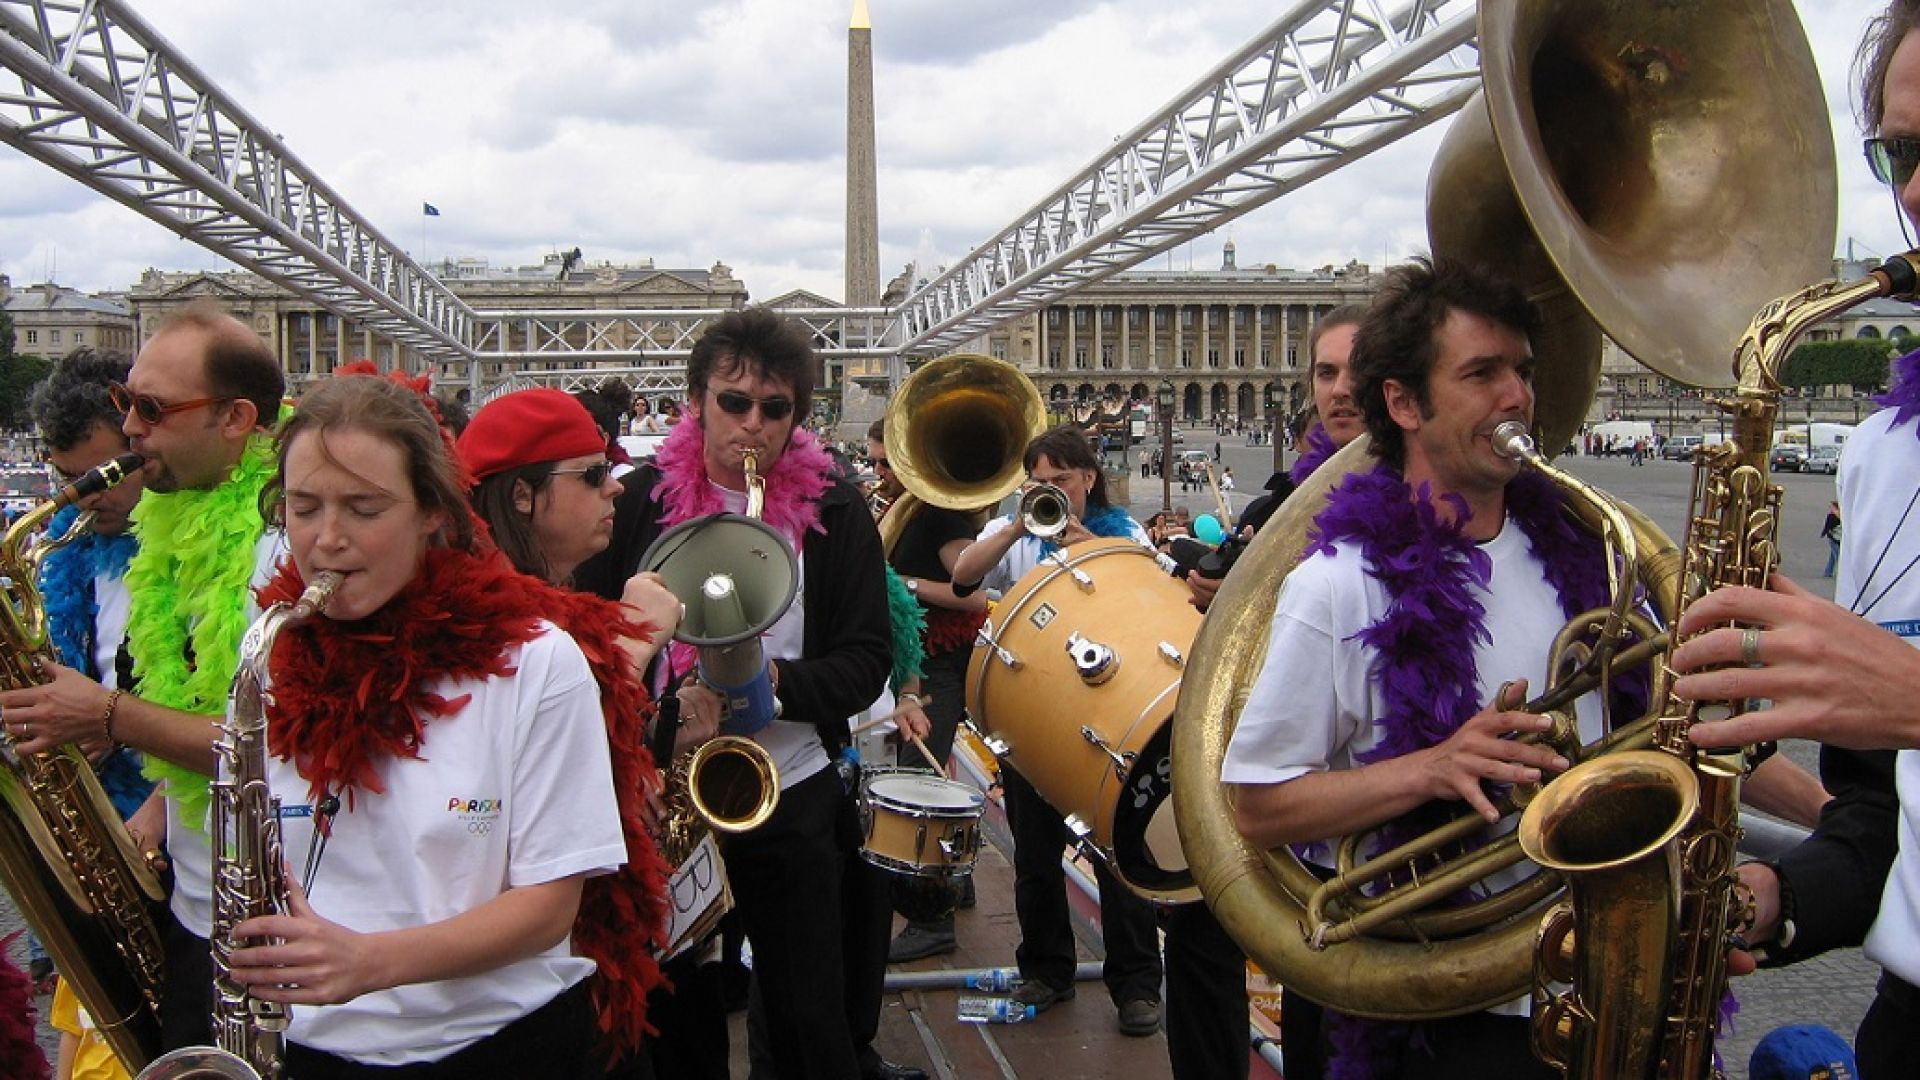 Mardi Brass Band